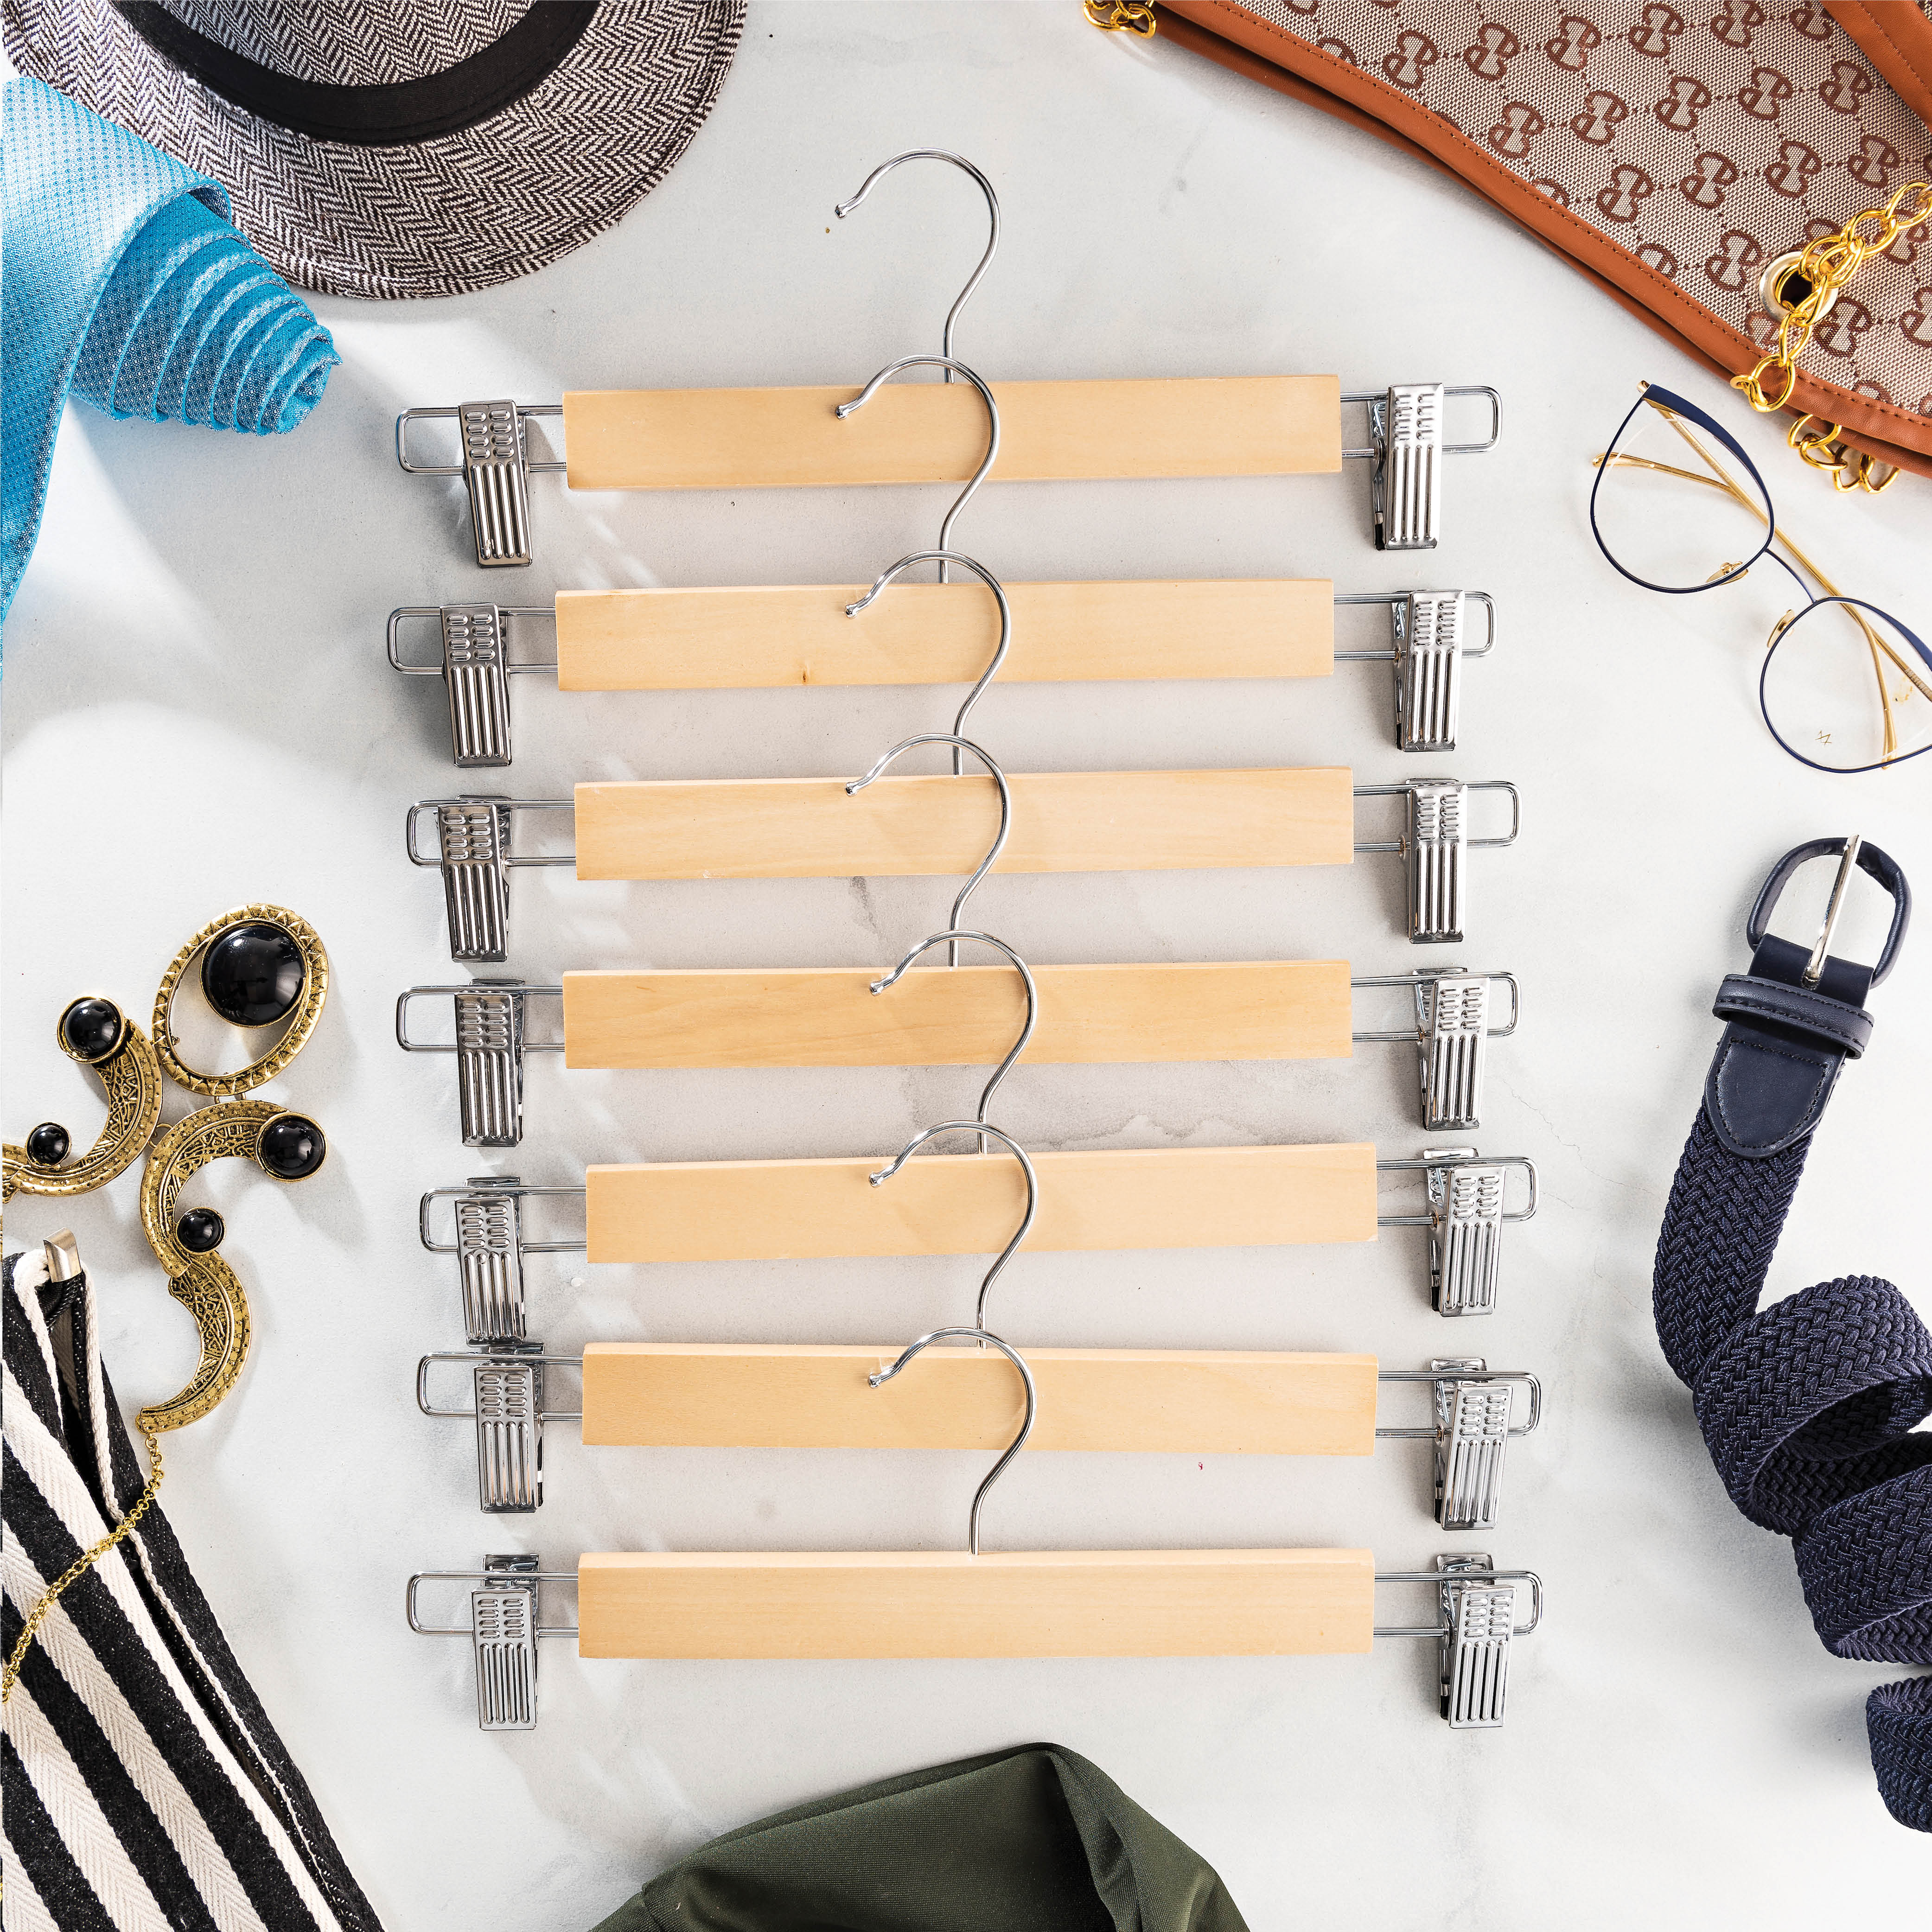 20-Pack Natural Wooden Skirt Hanger with 2 Metal Clips